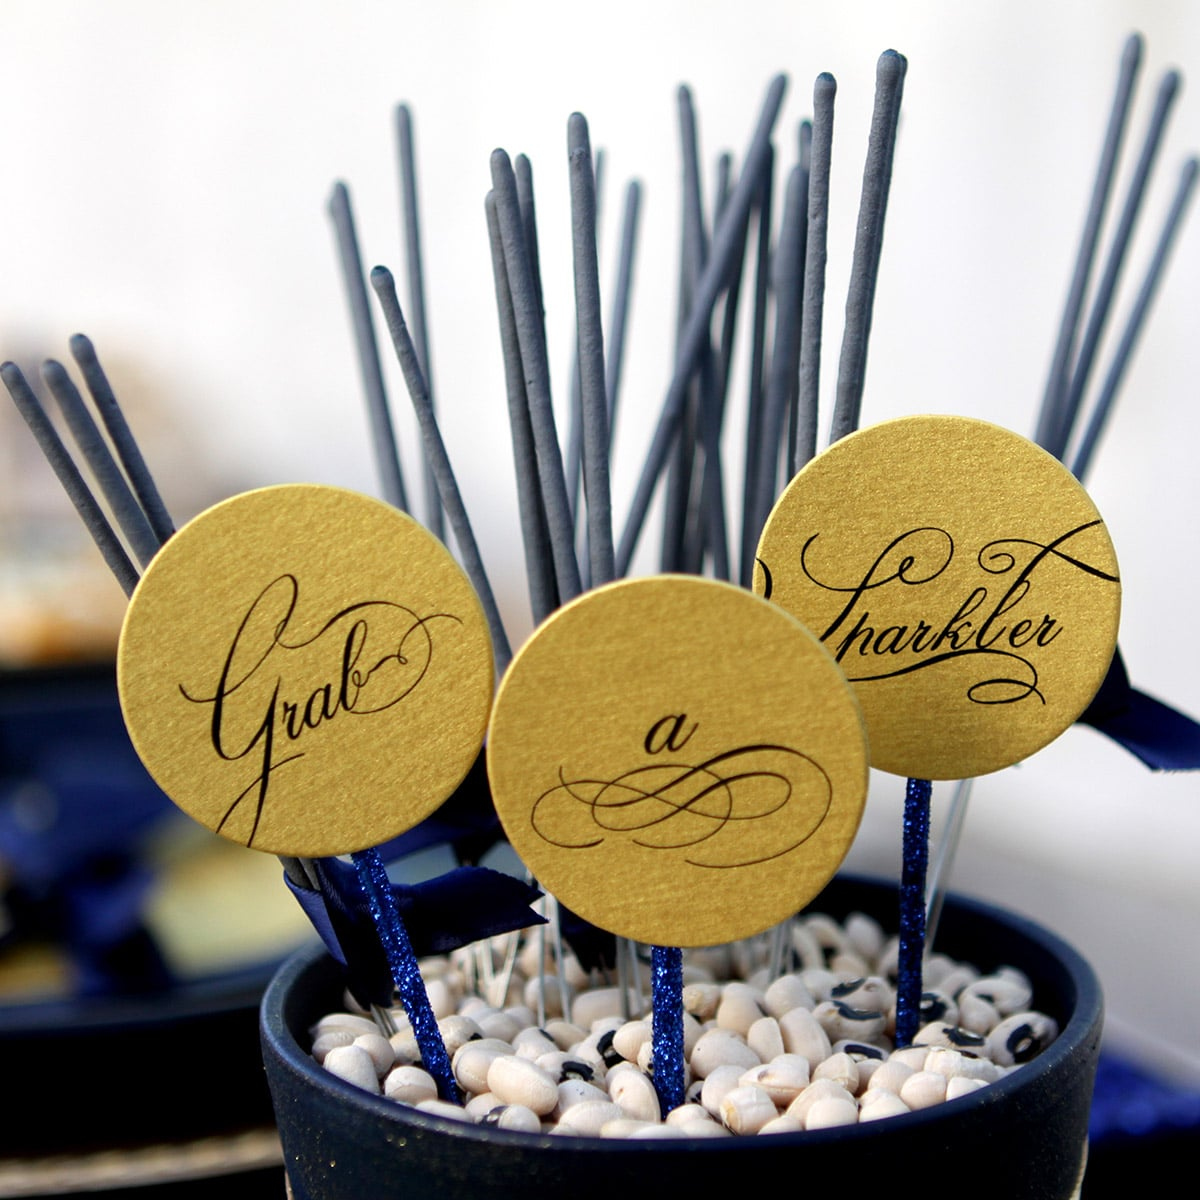 Image of an Elegant Centerpiece with Wooden Signs and Sparklers